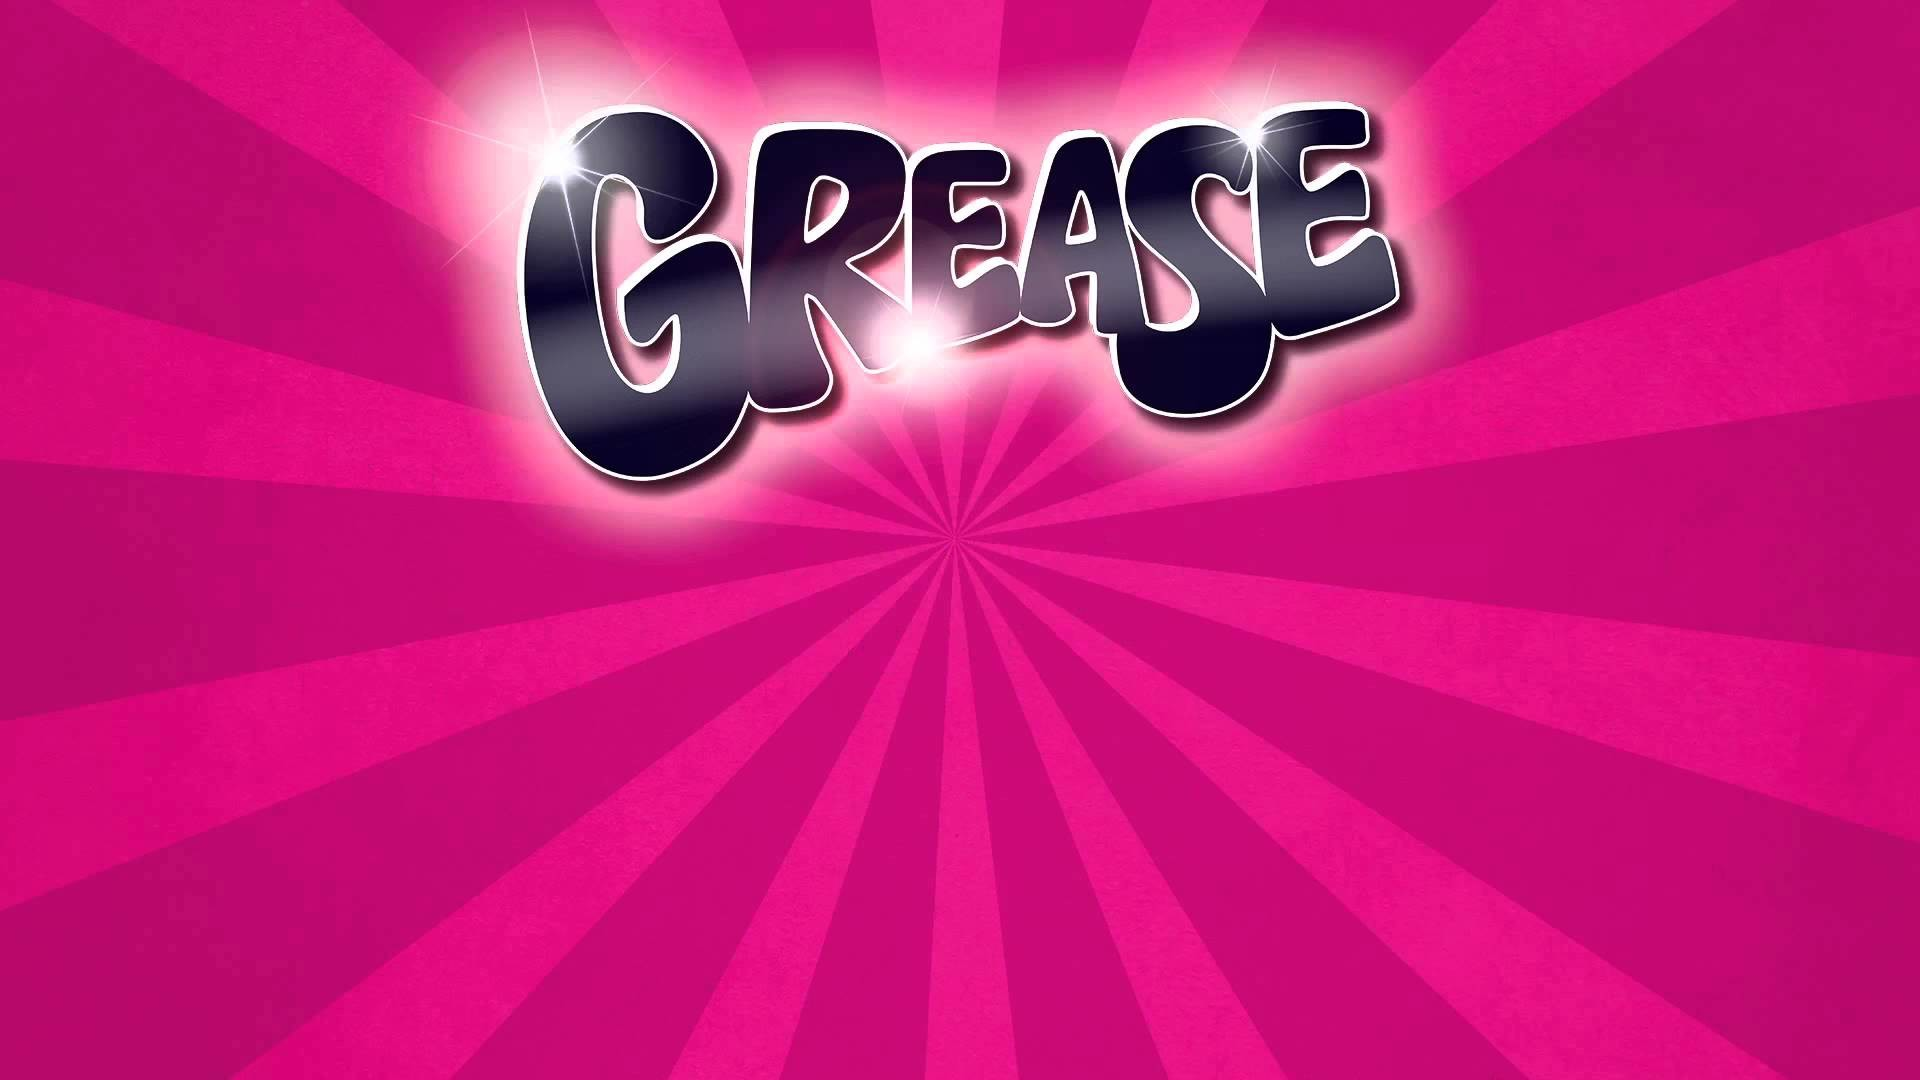 Grease Wallpapers 65 Images